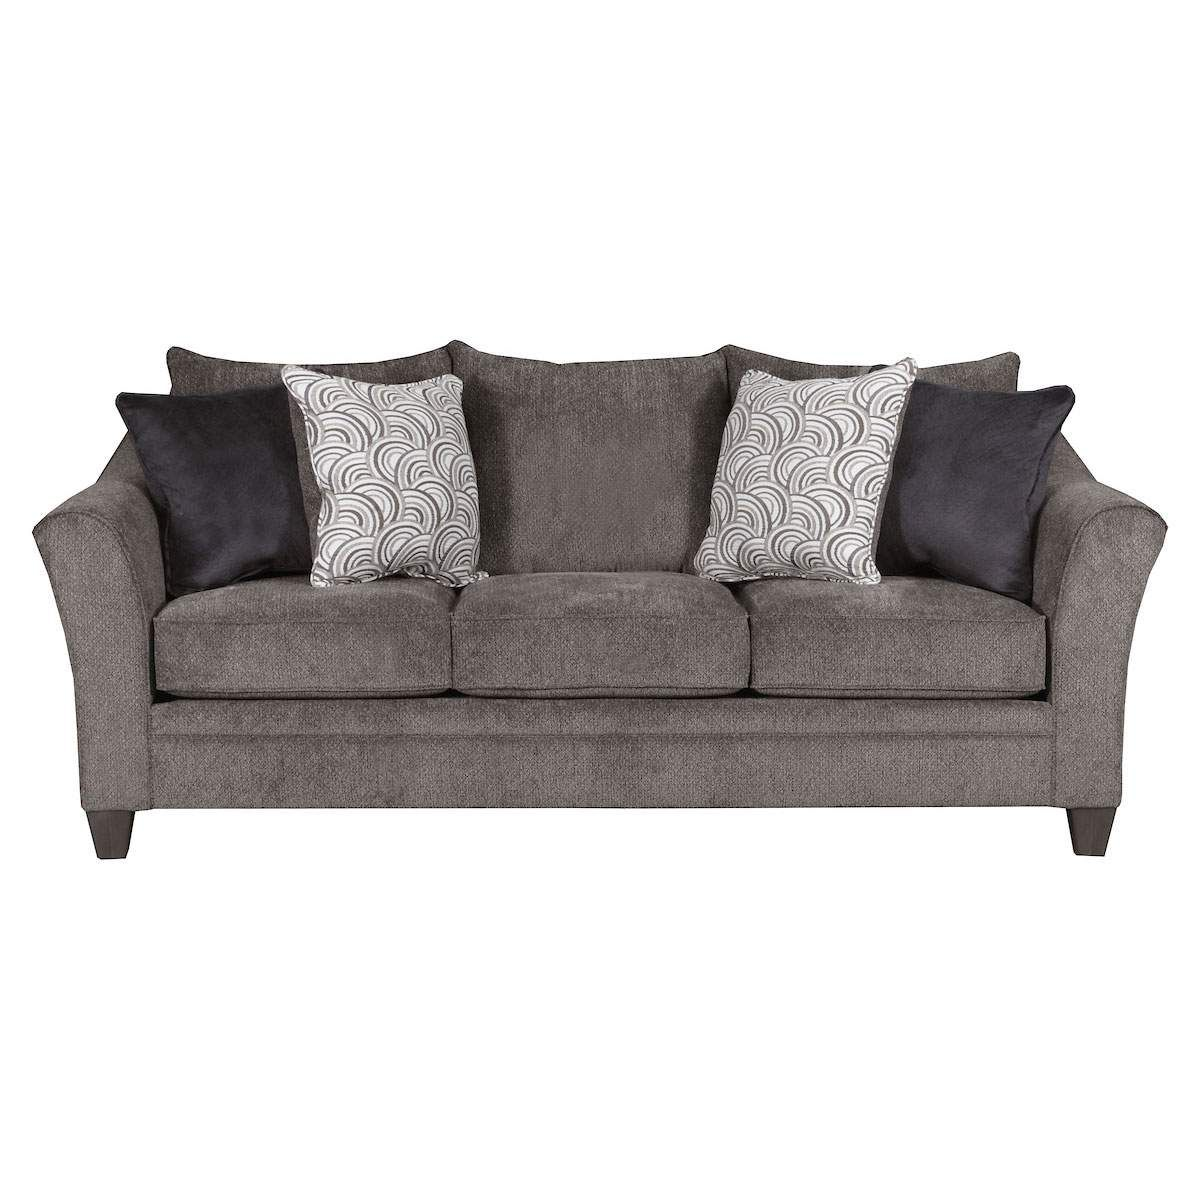 Surprising Albany Sofa In Pewter Jeromes Furniture Living Room In Ibusinesslaw Wood Chair Design Ideas Ibusinesslaworg